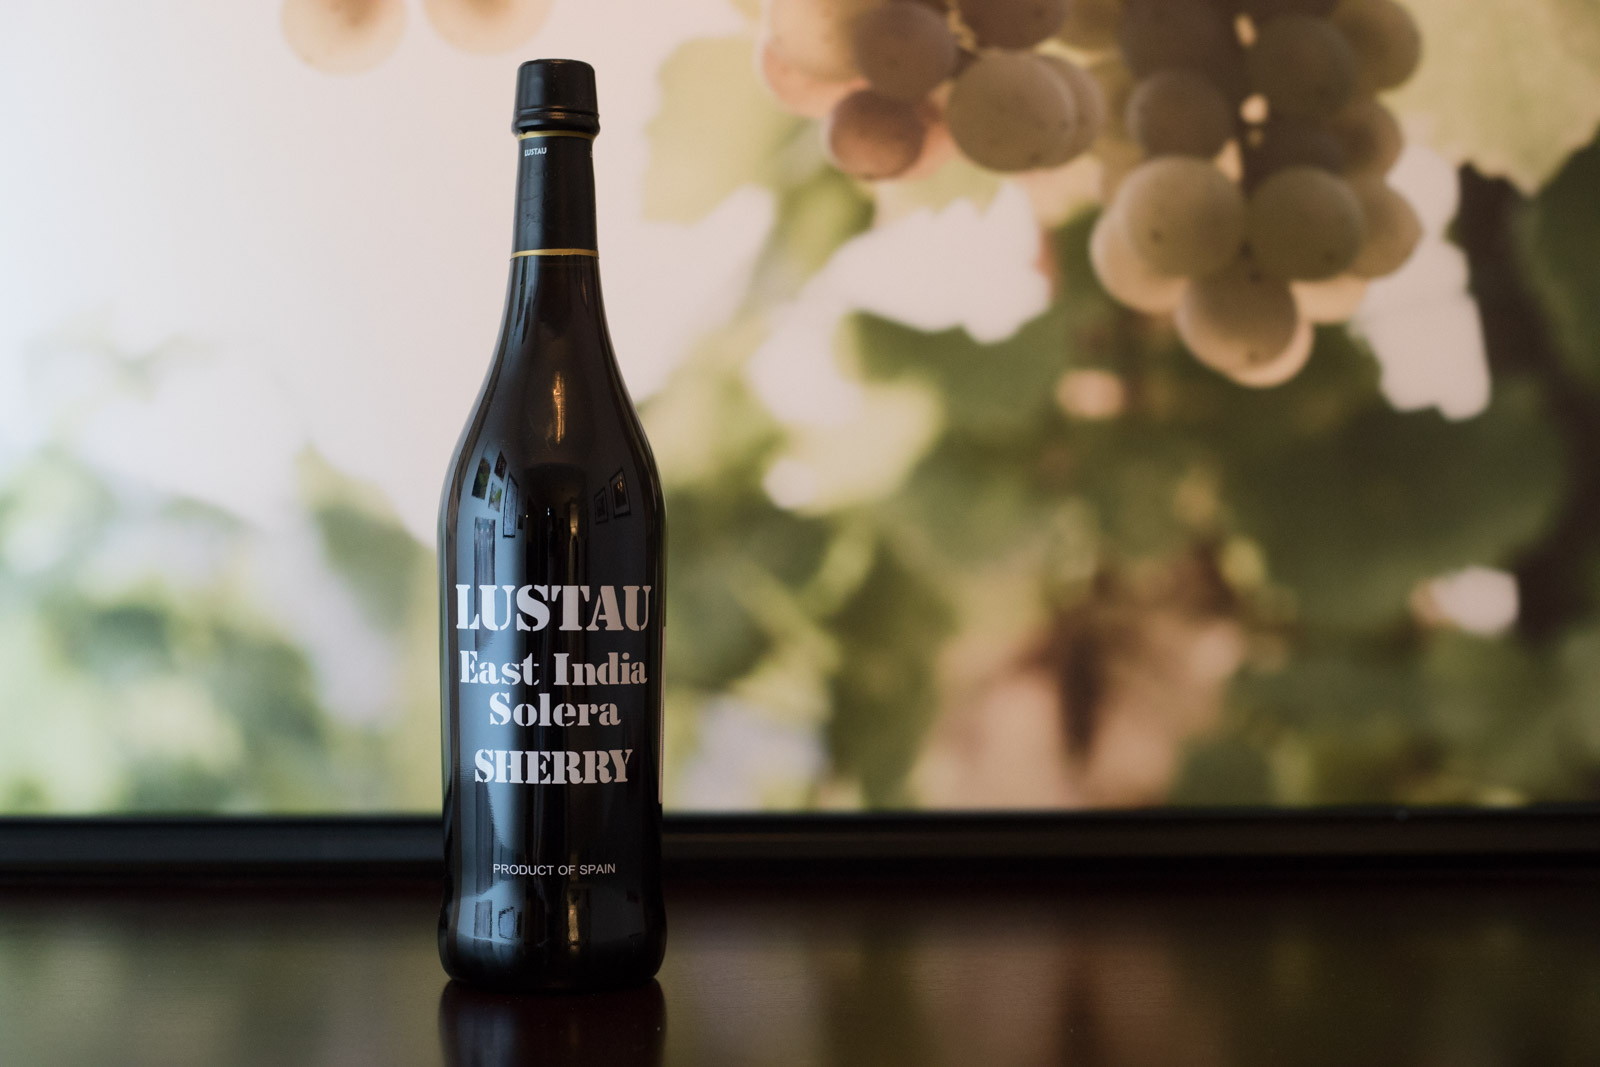 NV Emilio Lustau East India Solera Sherry ©Kevin Day/Opening a Bottle